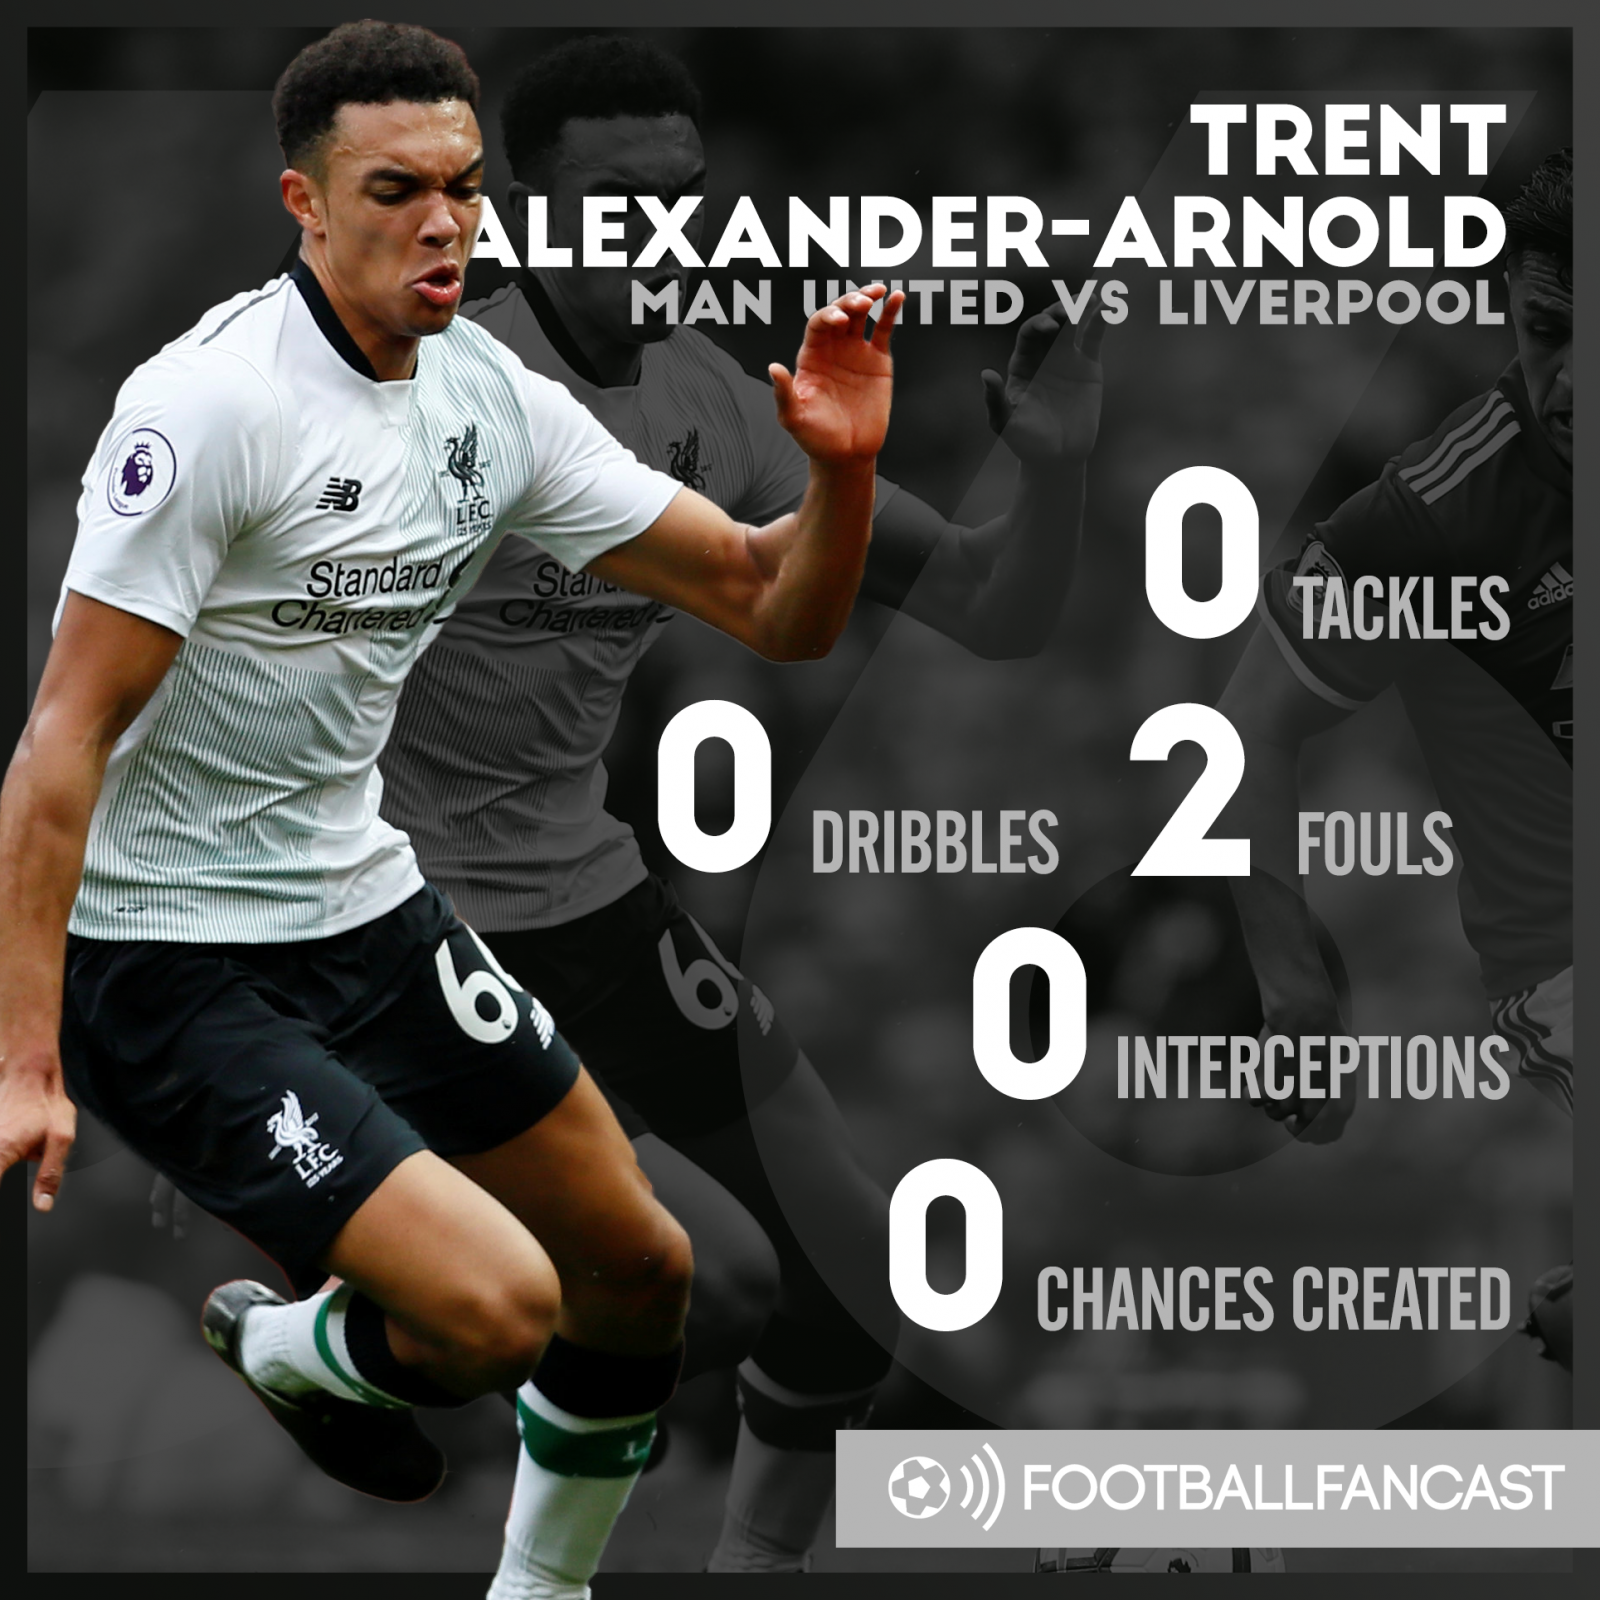 Trent Alexander-Arnold's stats from Liverpool's 2-1 defeat to Manchester United